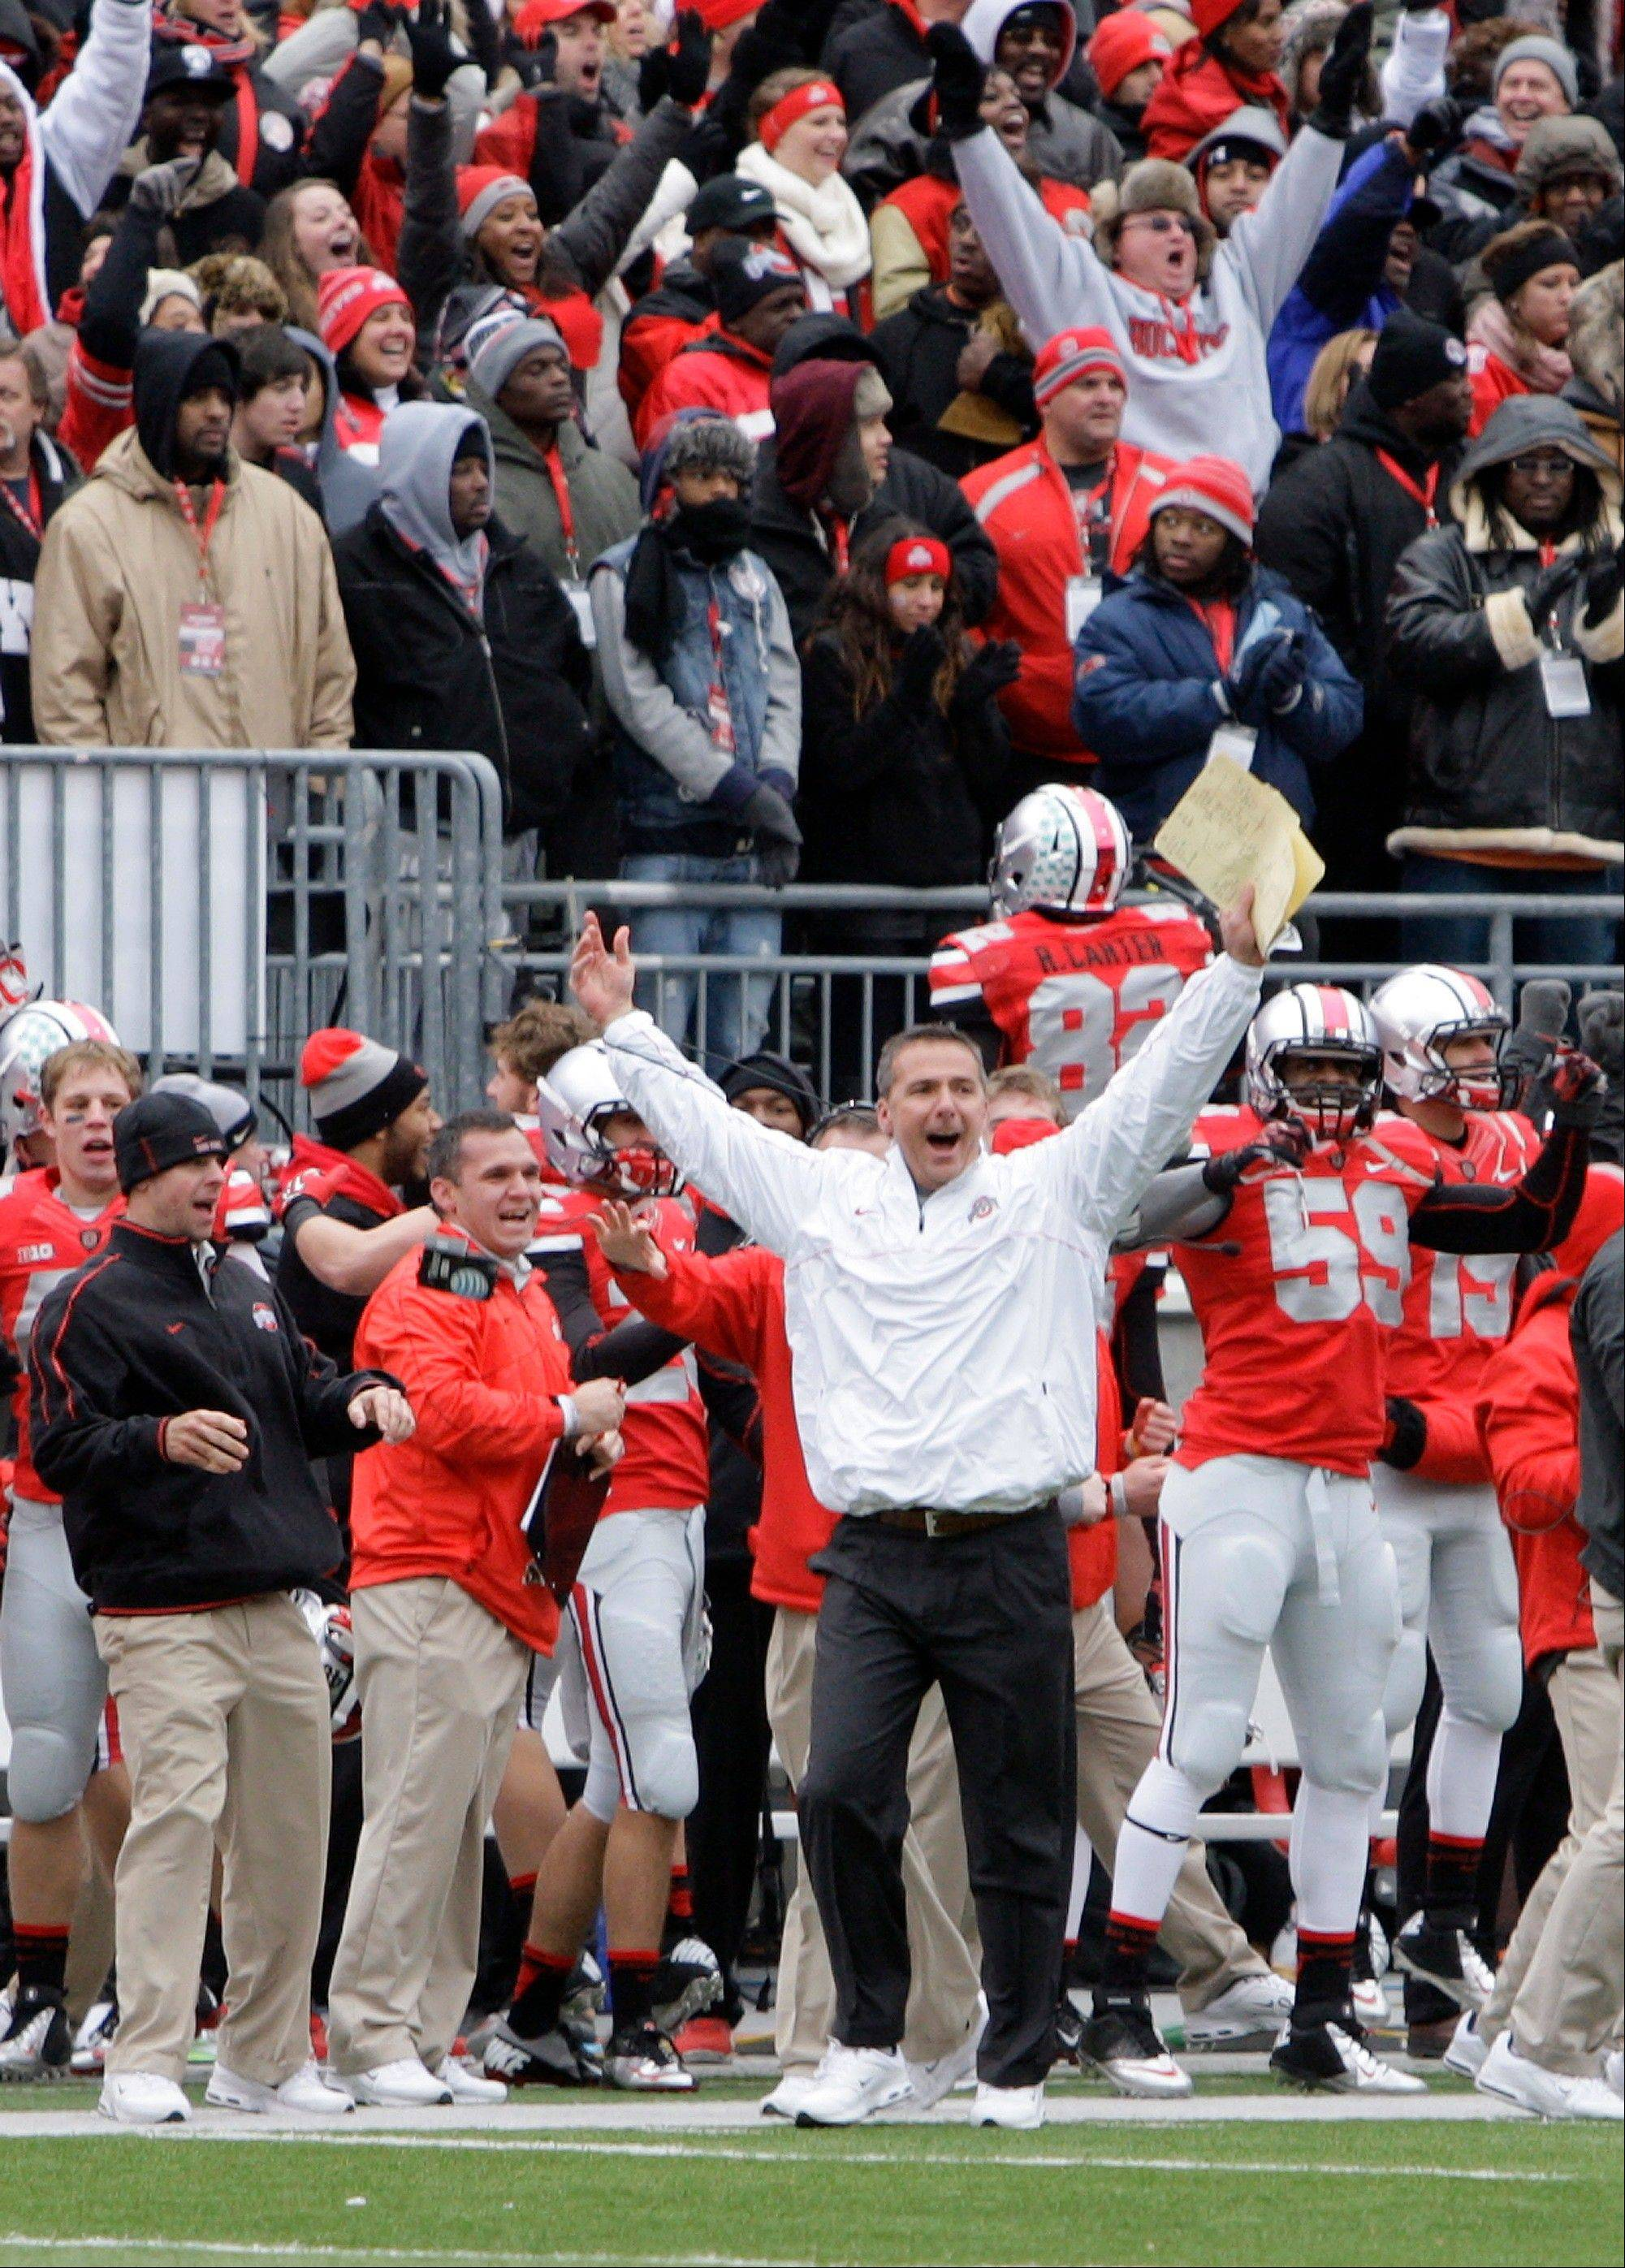 Ohio State head coach Urban Meyer celebrates as time runs off the clock in the Buckeyes� 26-21 home win over Michigan on Saturday. Ohio State went 12-0 this season but can�t play in a bowl game.